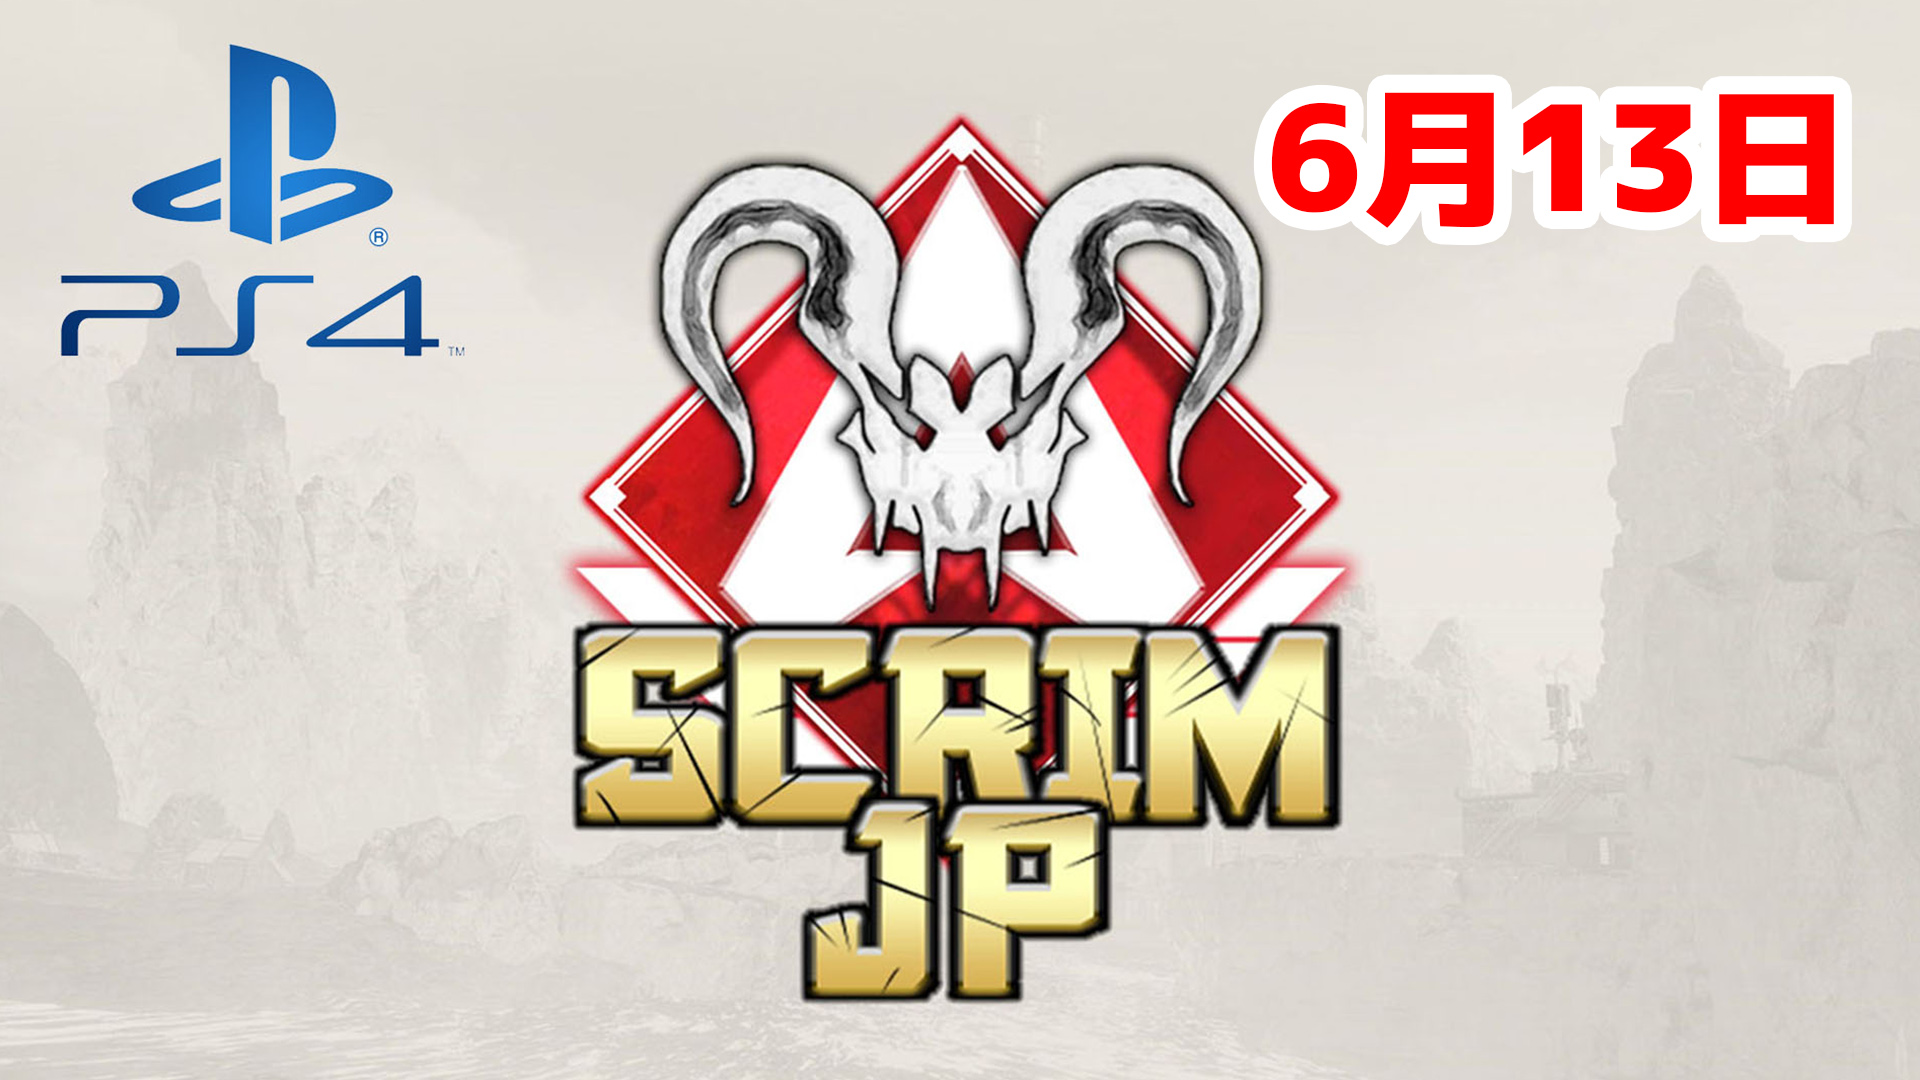 【大会アーカイブ】Apex Legends Scrim JP -Predators PS4-【2020/06/13】